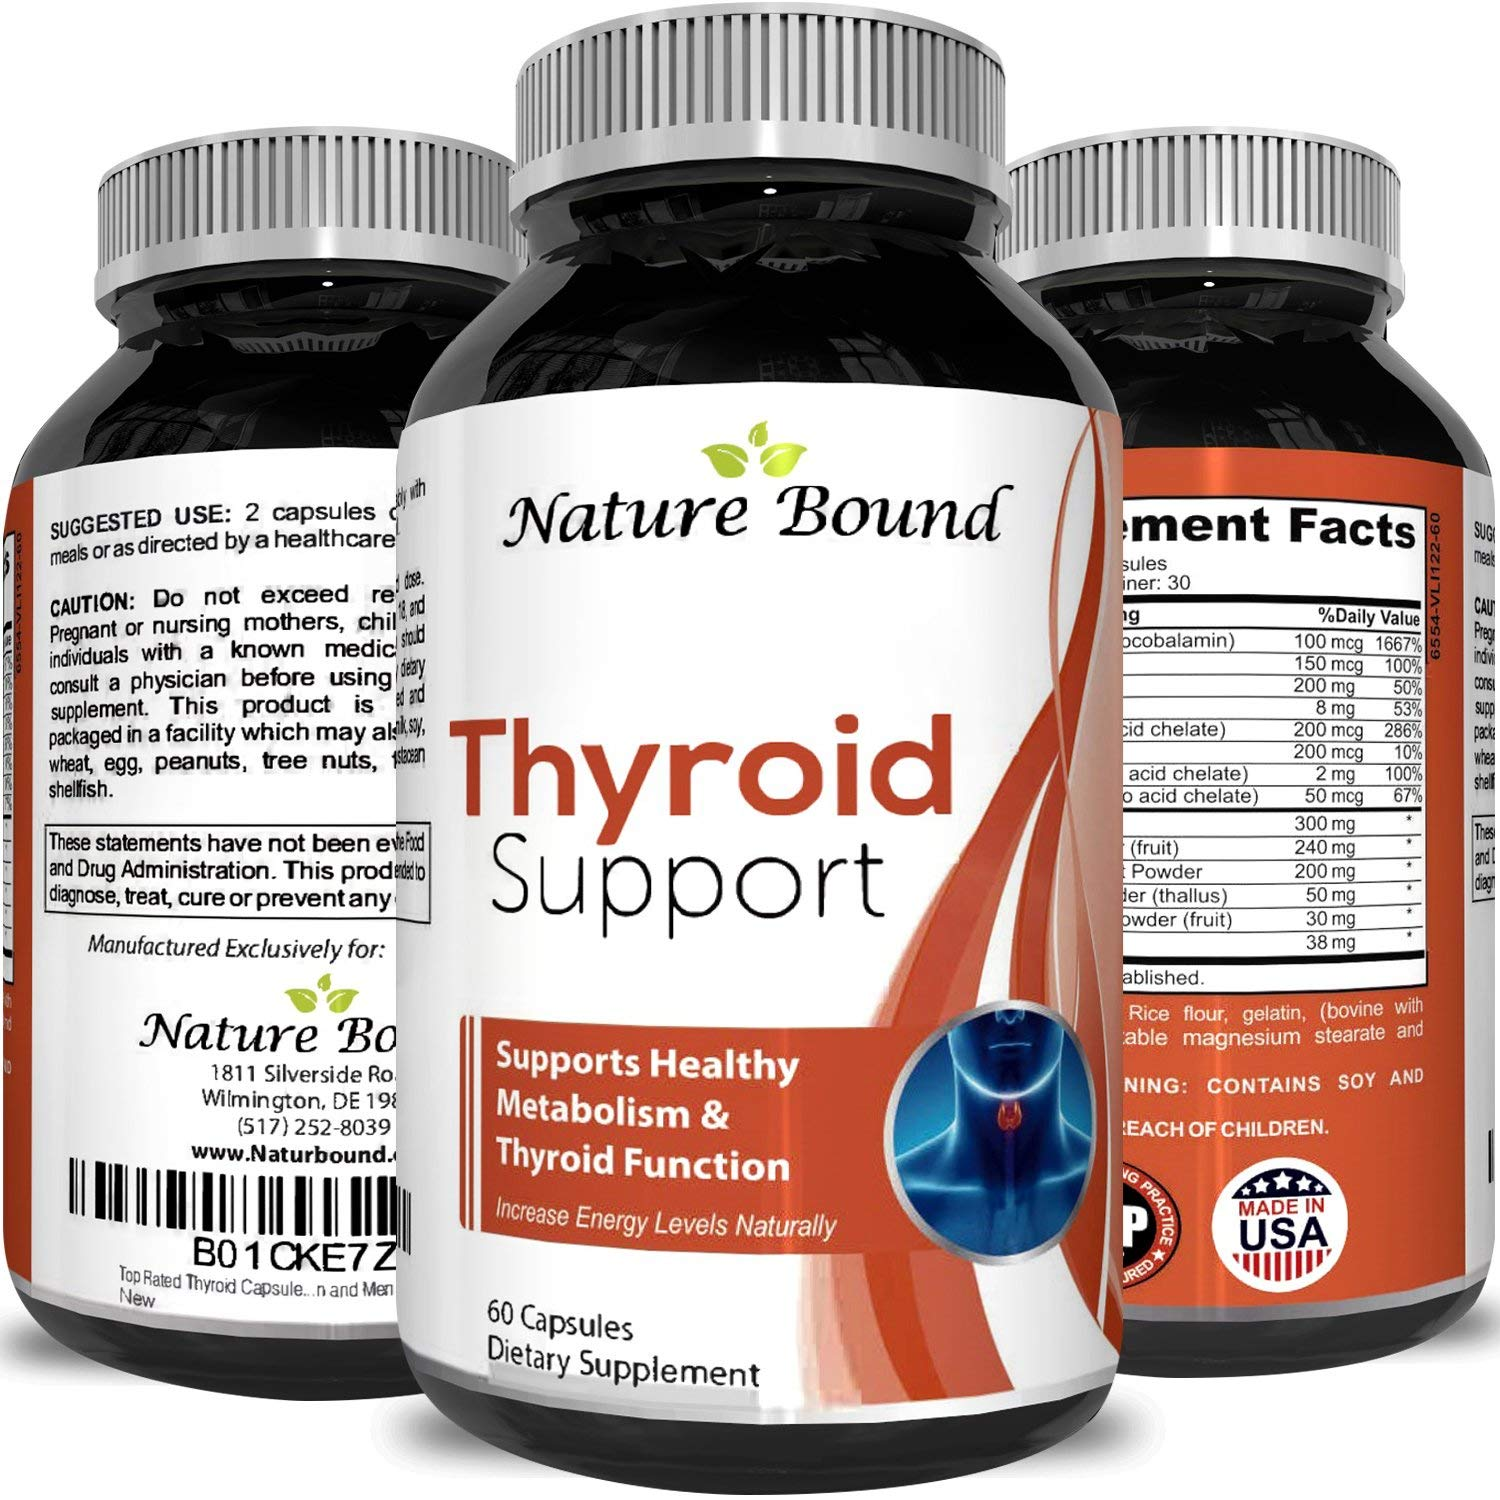 Nature Bound Thyroid Support Formula for Men and Women - Natural Hormone Balance Support and Metabolism Supplement for Weight Loss - Boost Energy Levels 100% Natural 60 Capsules